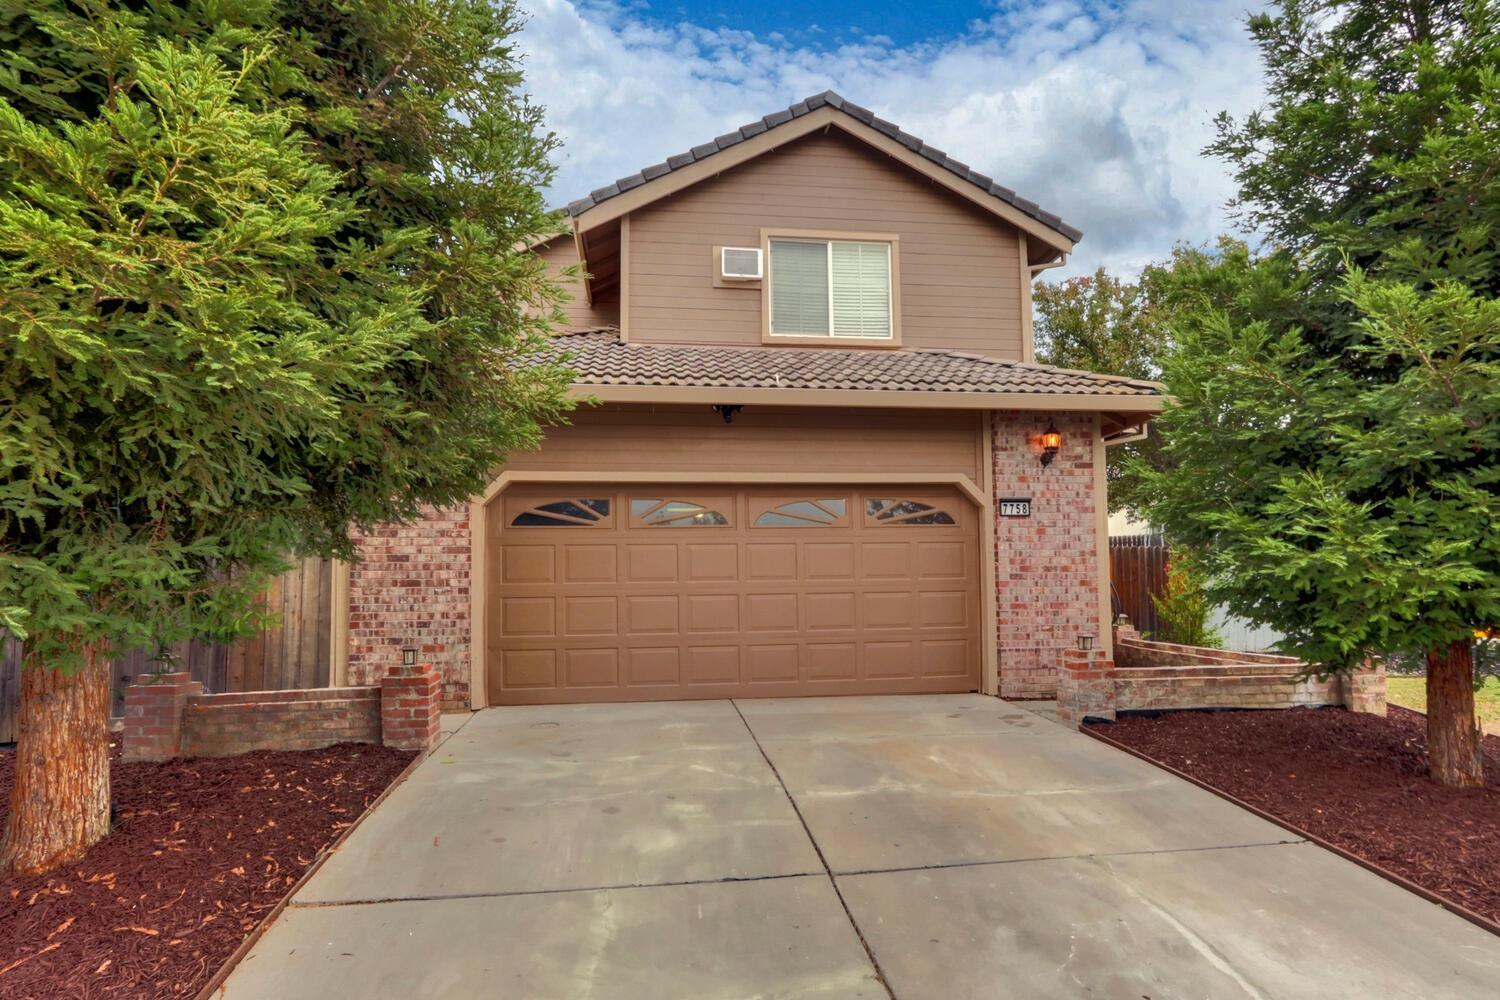 Welcome to this 4 bedroom, 3 bathroom home. Light and welcoming living room with vaulted ceiling fea